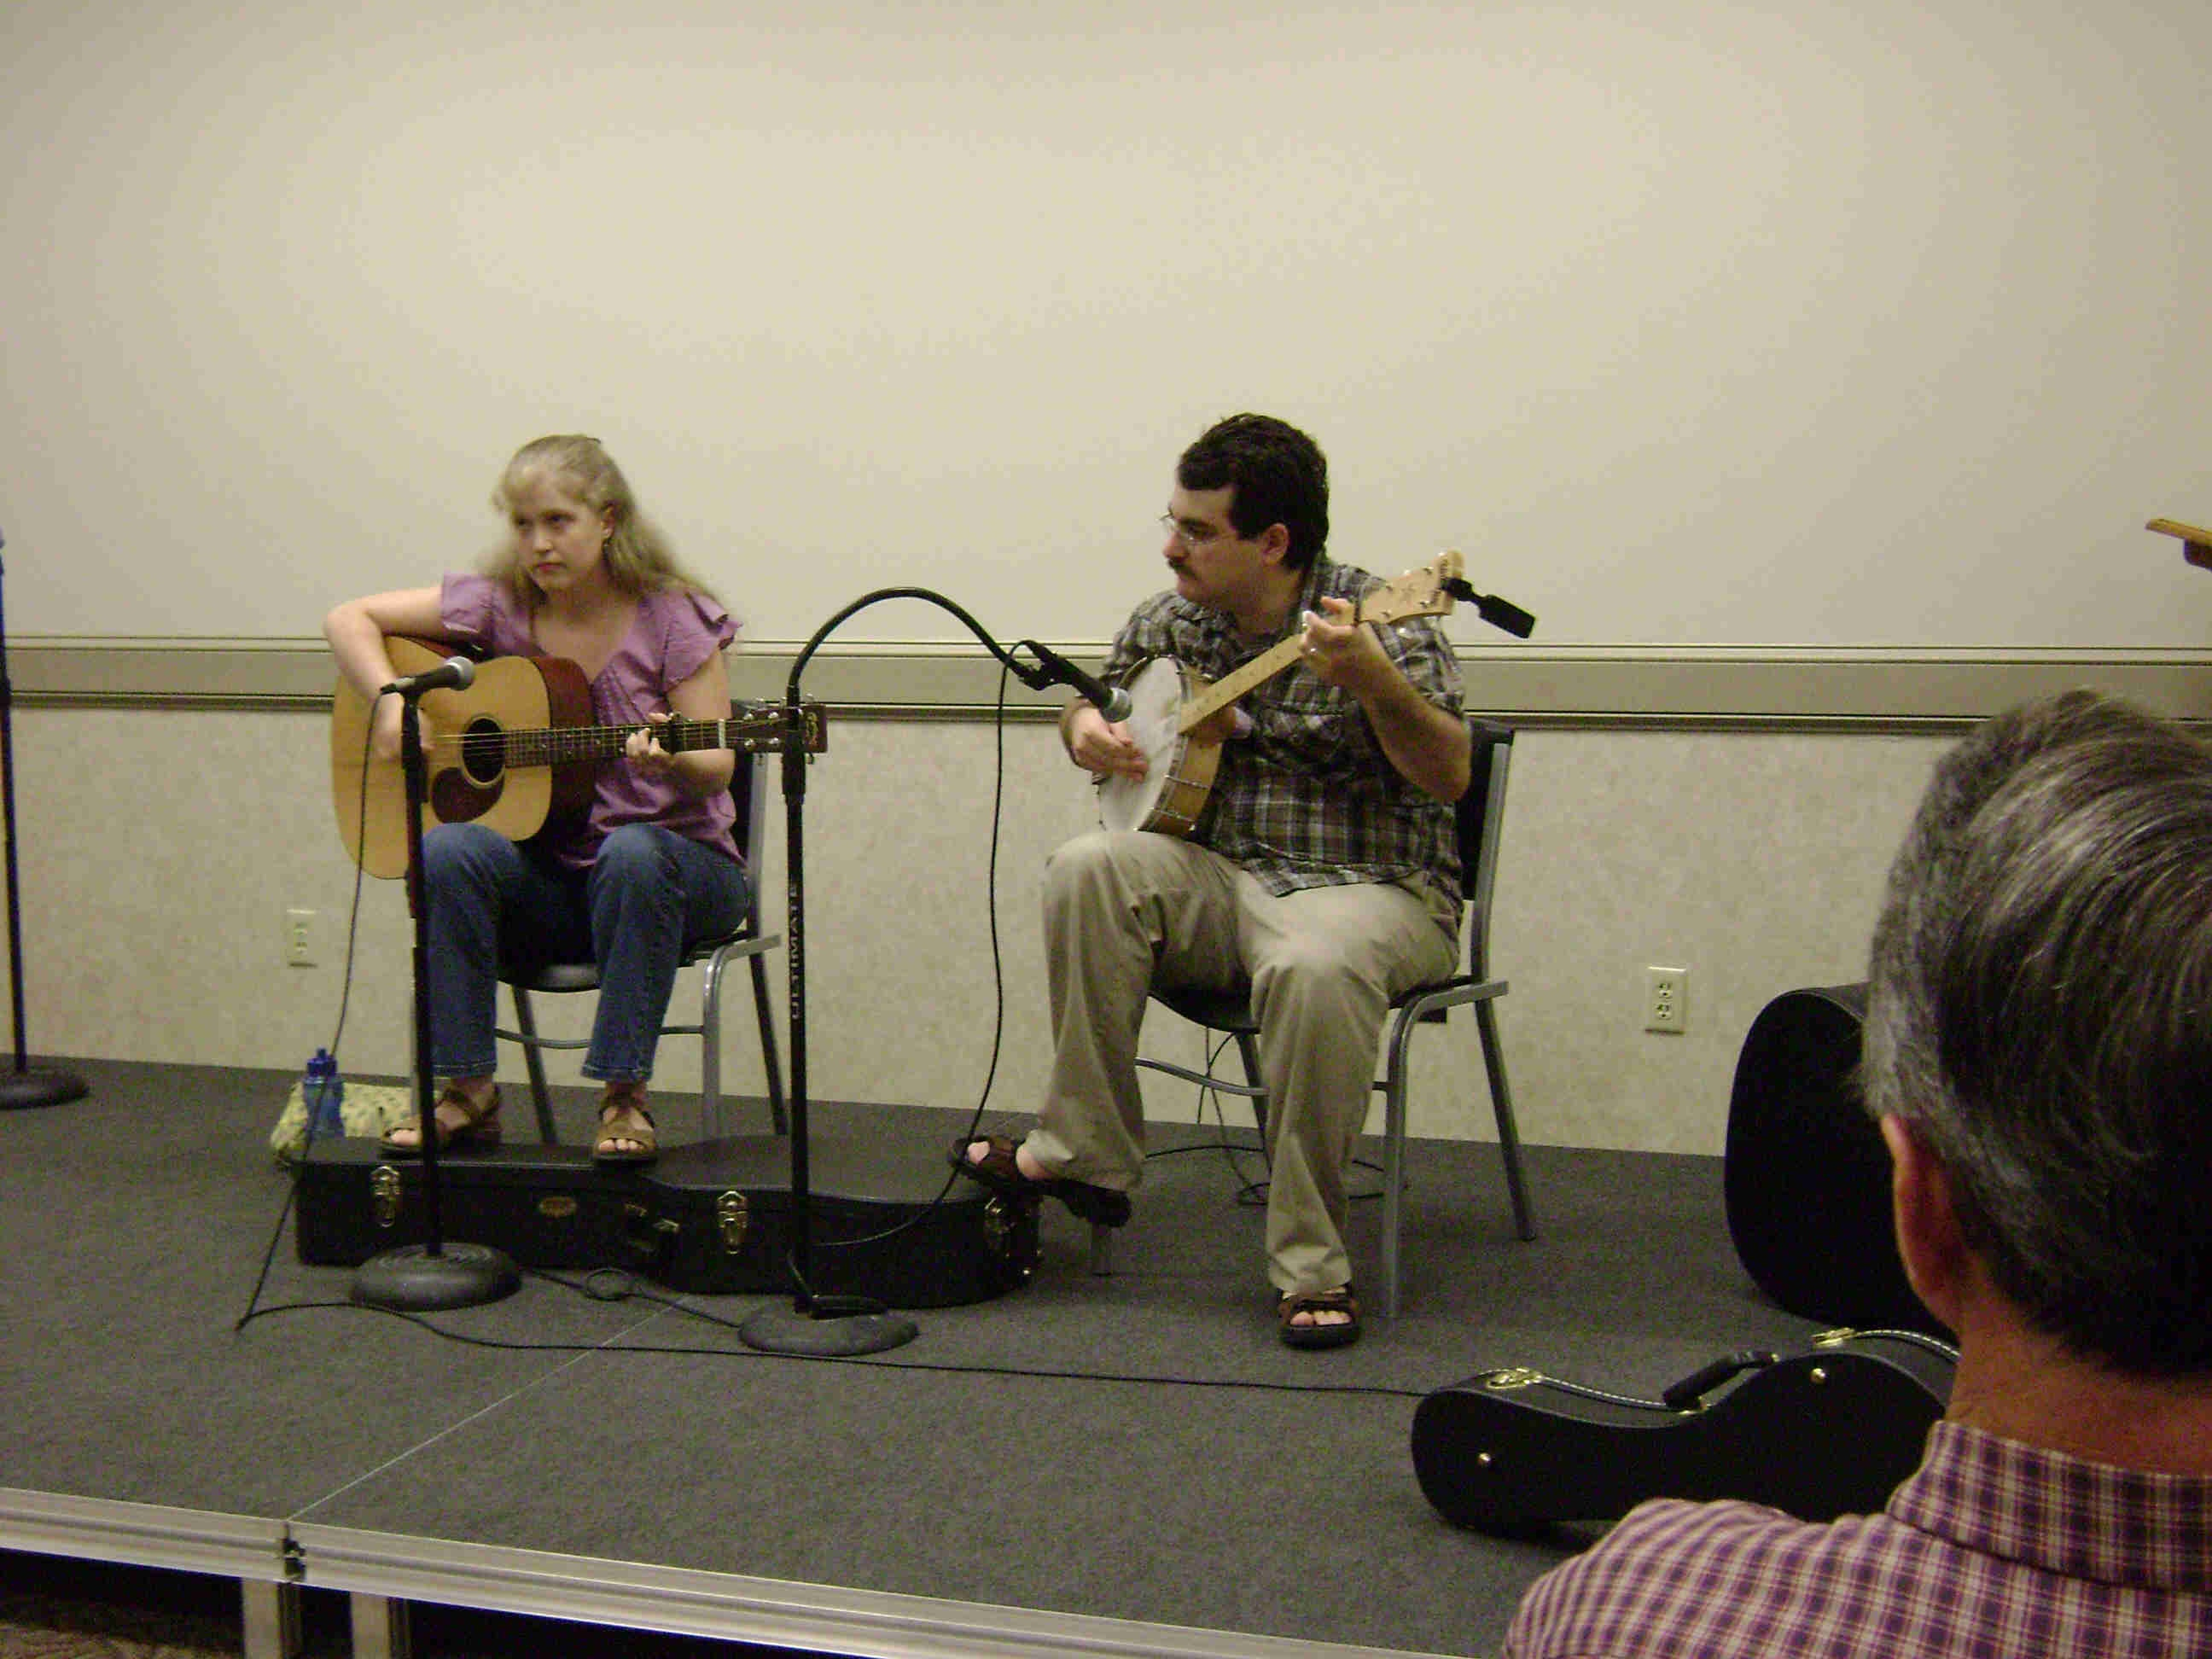 Hilary Scheel and Daniel Fleck 2009